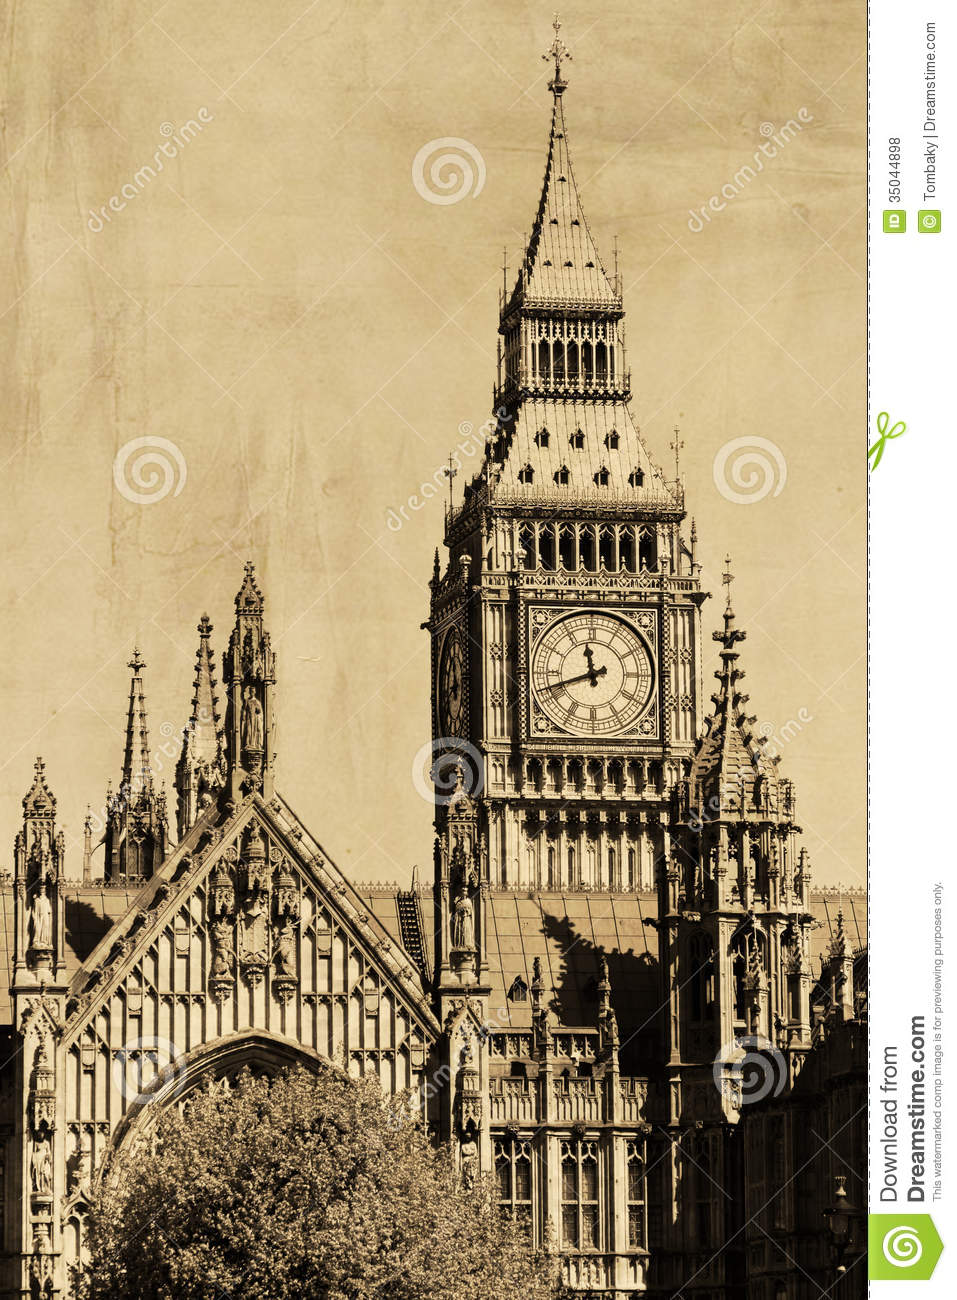 Vintage View Of London Big Ben Royalty Free Stock Photos